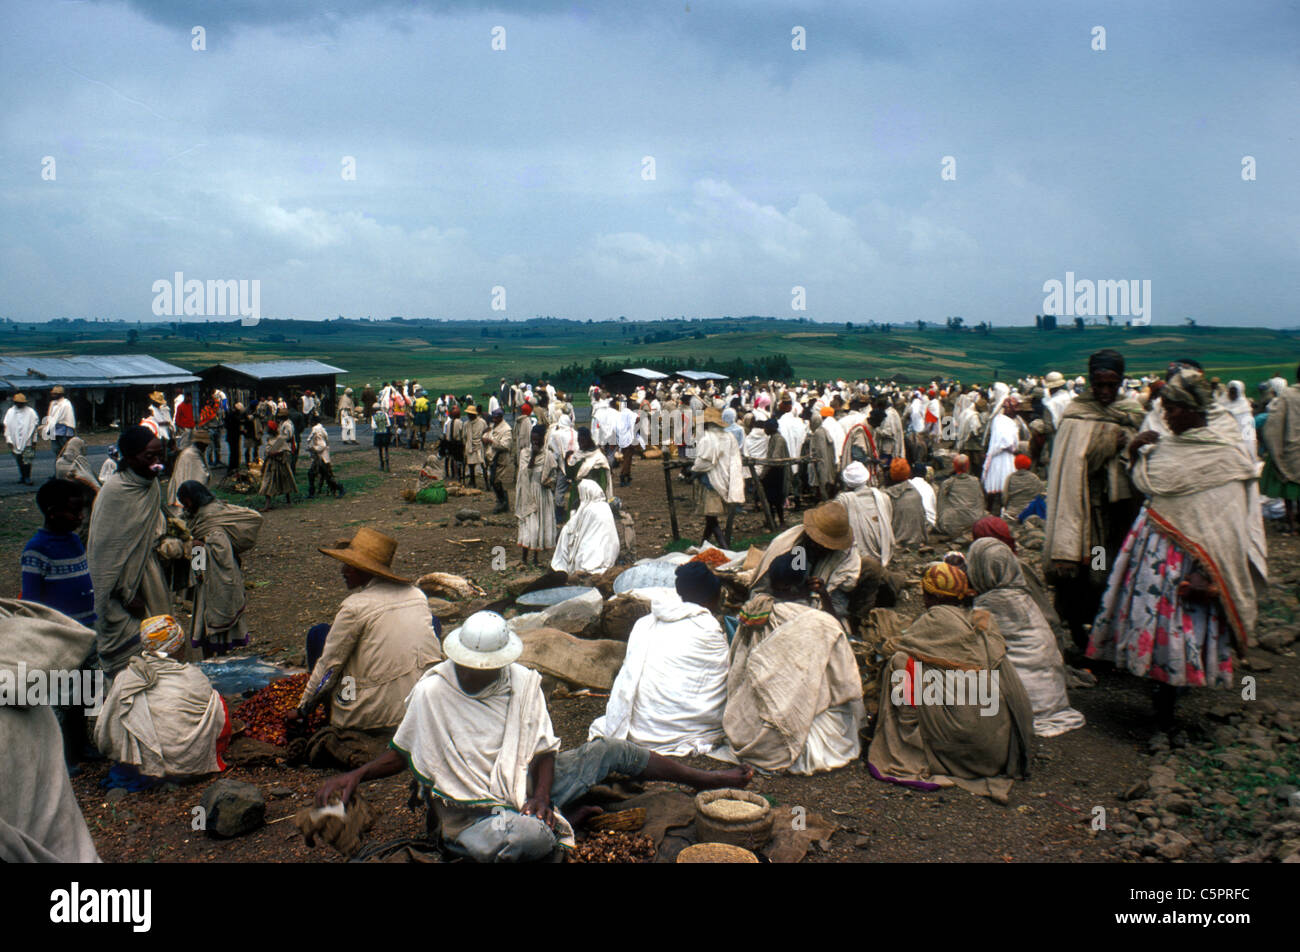 People in an up-country market near Harar, Ethiopia - Stock Image